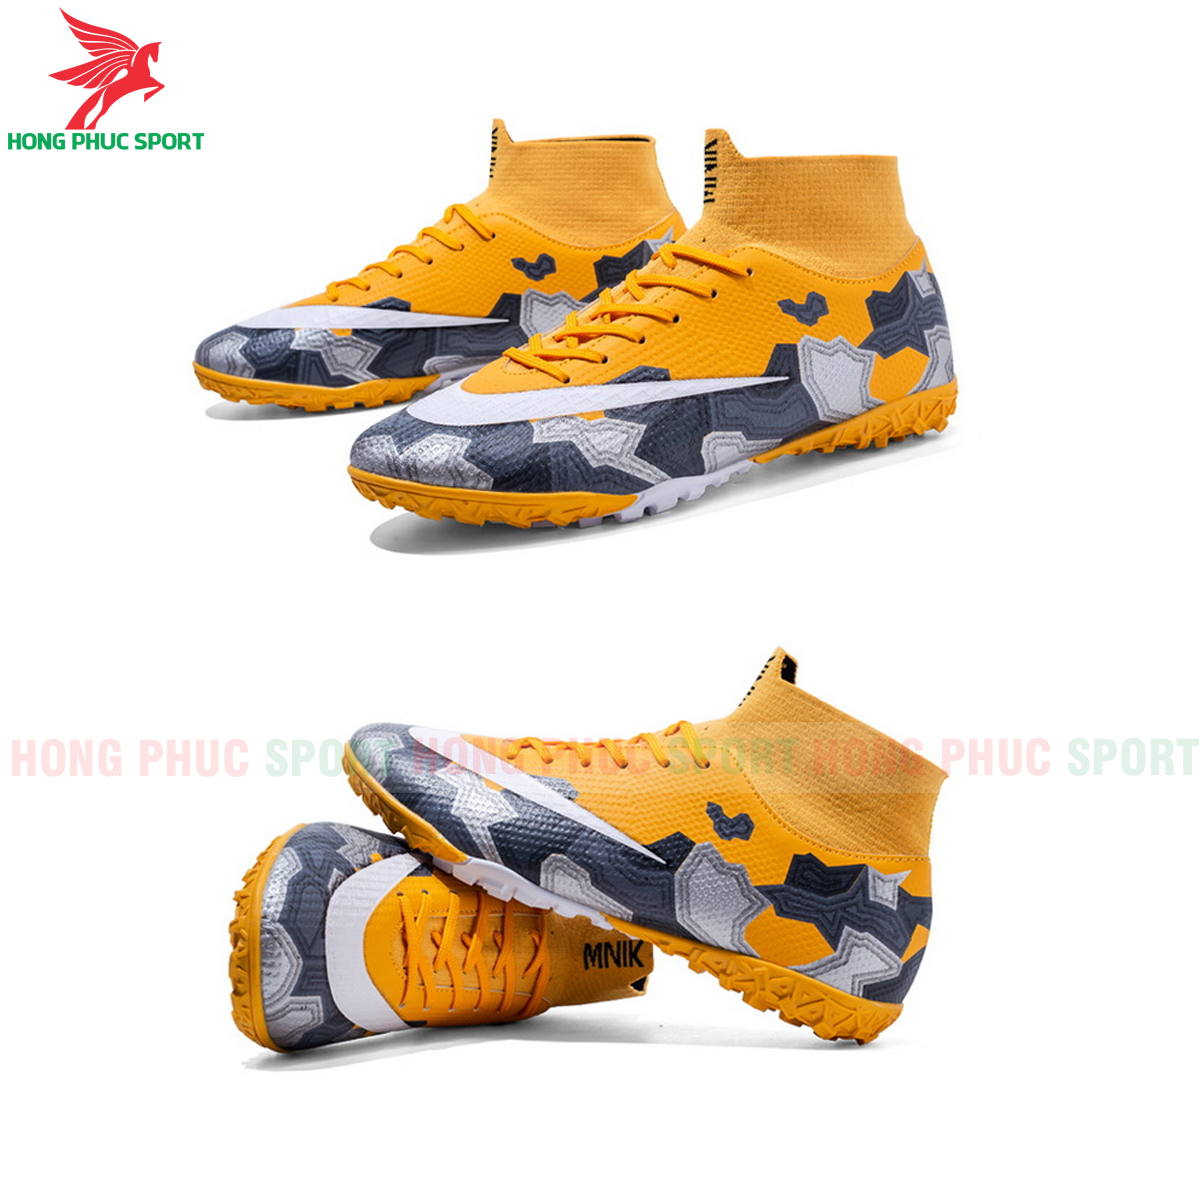 https://cdn.hongphucsport.com/unsafe/s4.shopbay.vn/files/285/giay-co-cao-superfly-7-elite-mbappe-dinh-thap-mau-vang-1-5f9392f712246.png